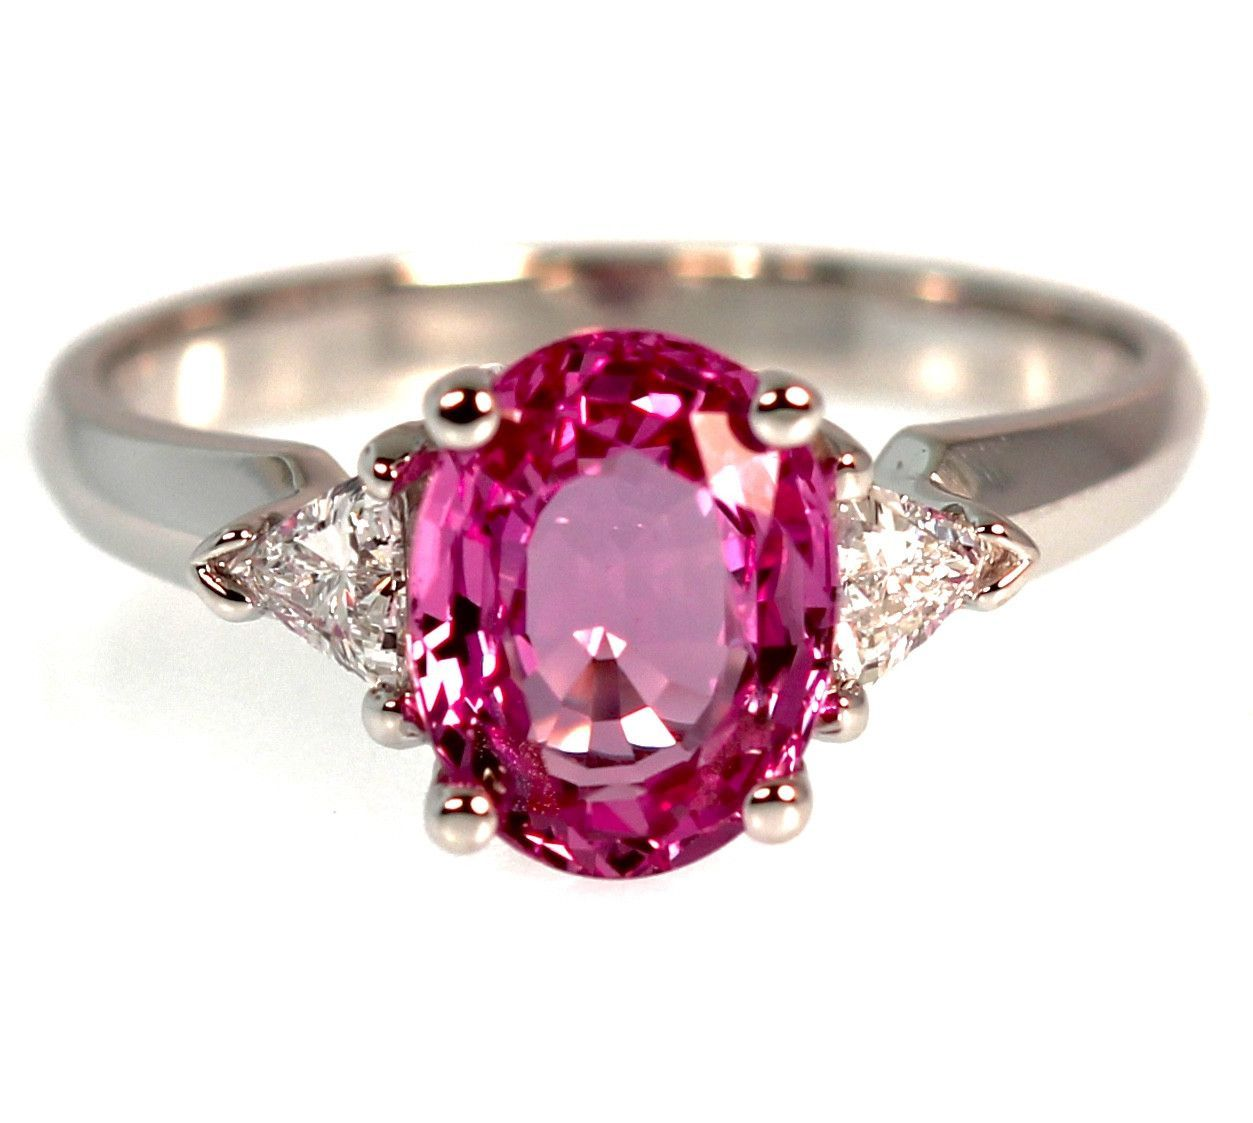 2 Carat Pink Sapphire Engagement Ring | Pink sapphire engagement ...